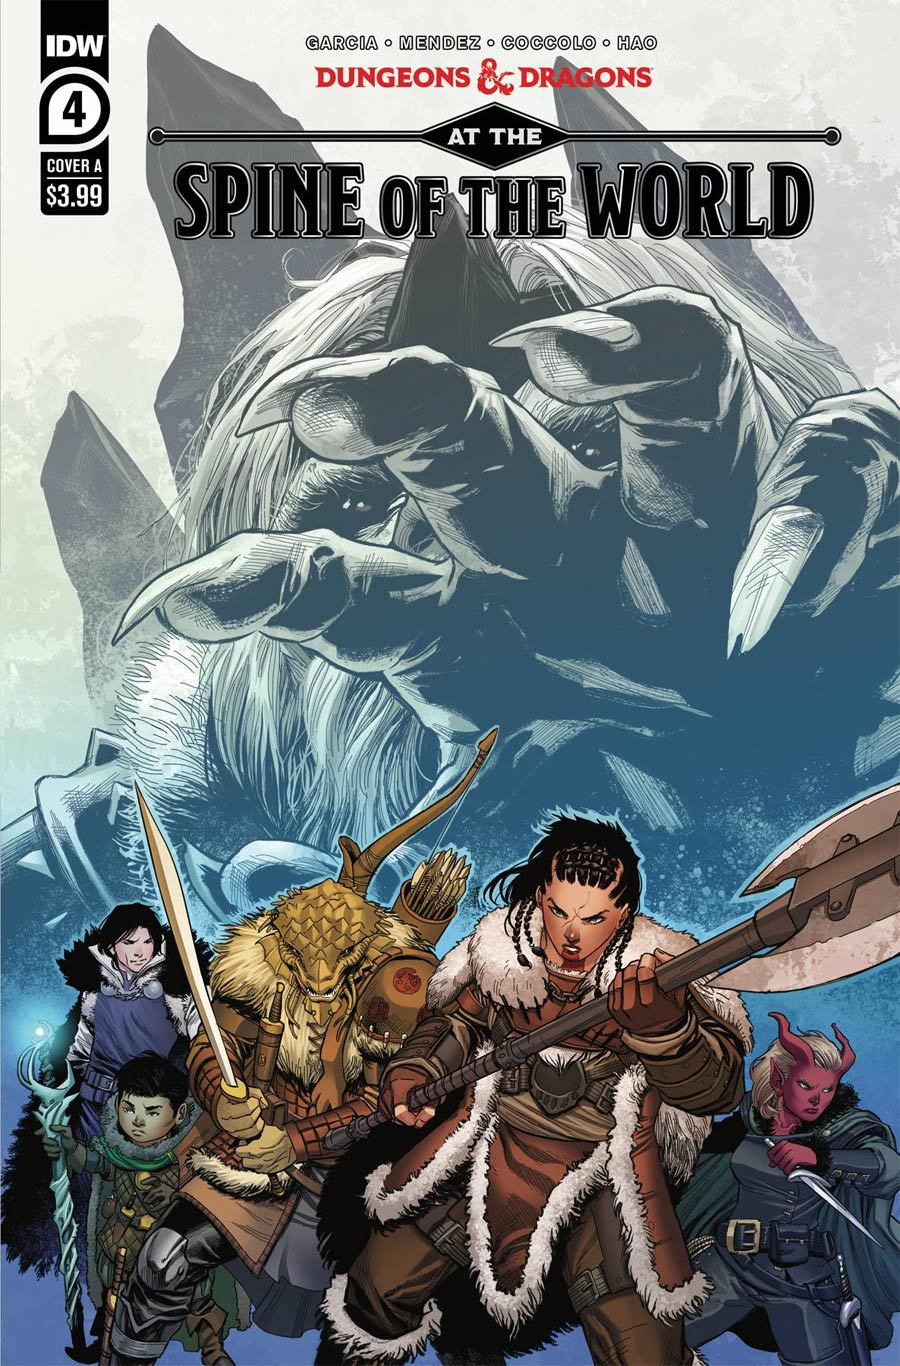 Dungeons & Dragons At The Spine Of The World #4 Cover A Regular Martin Coccolo Cover